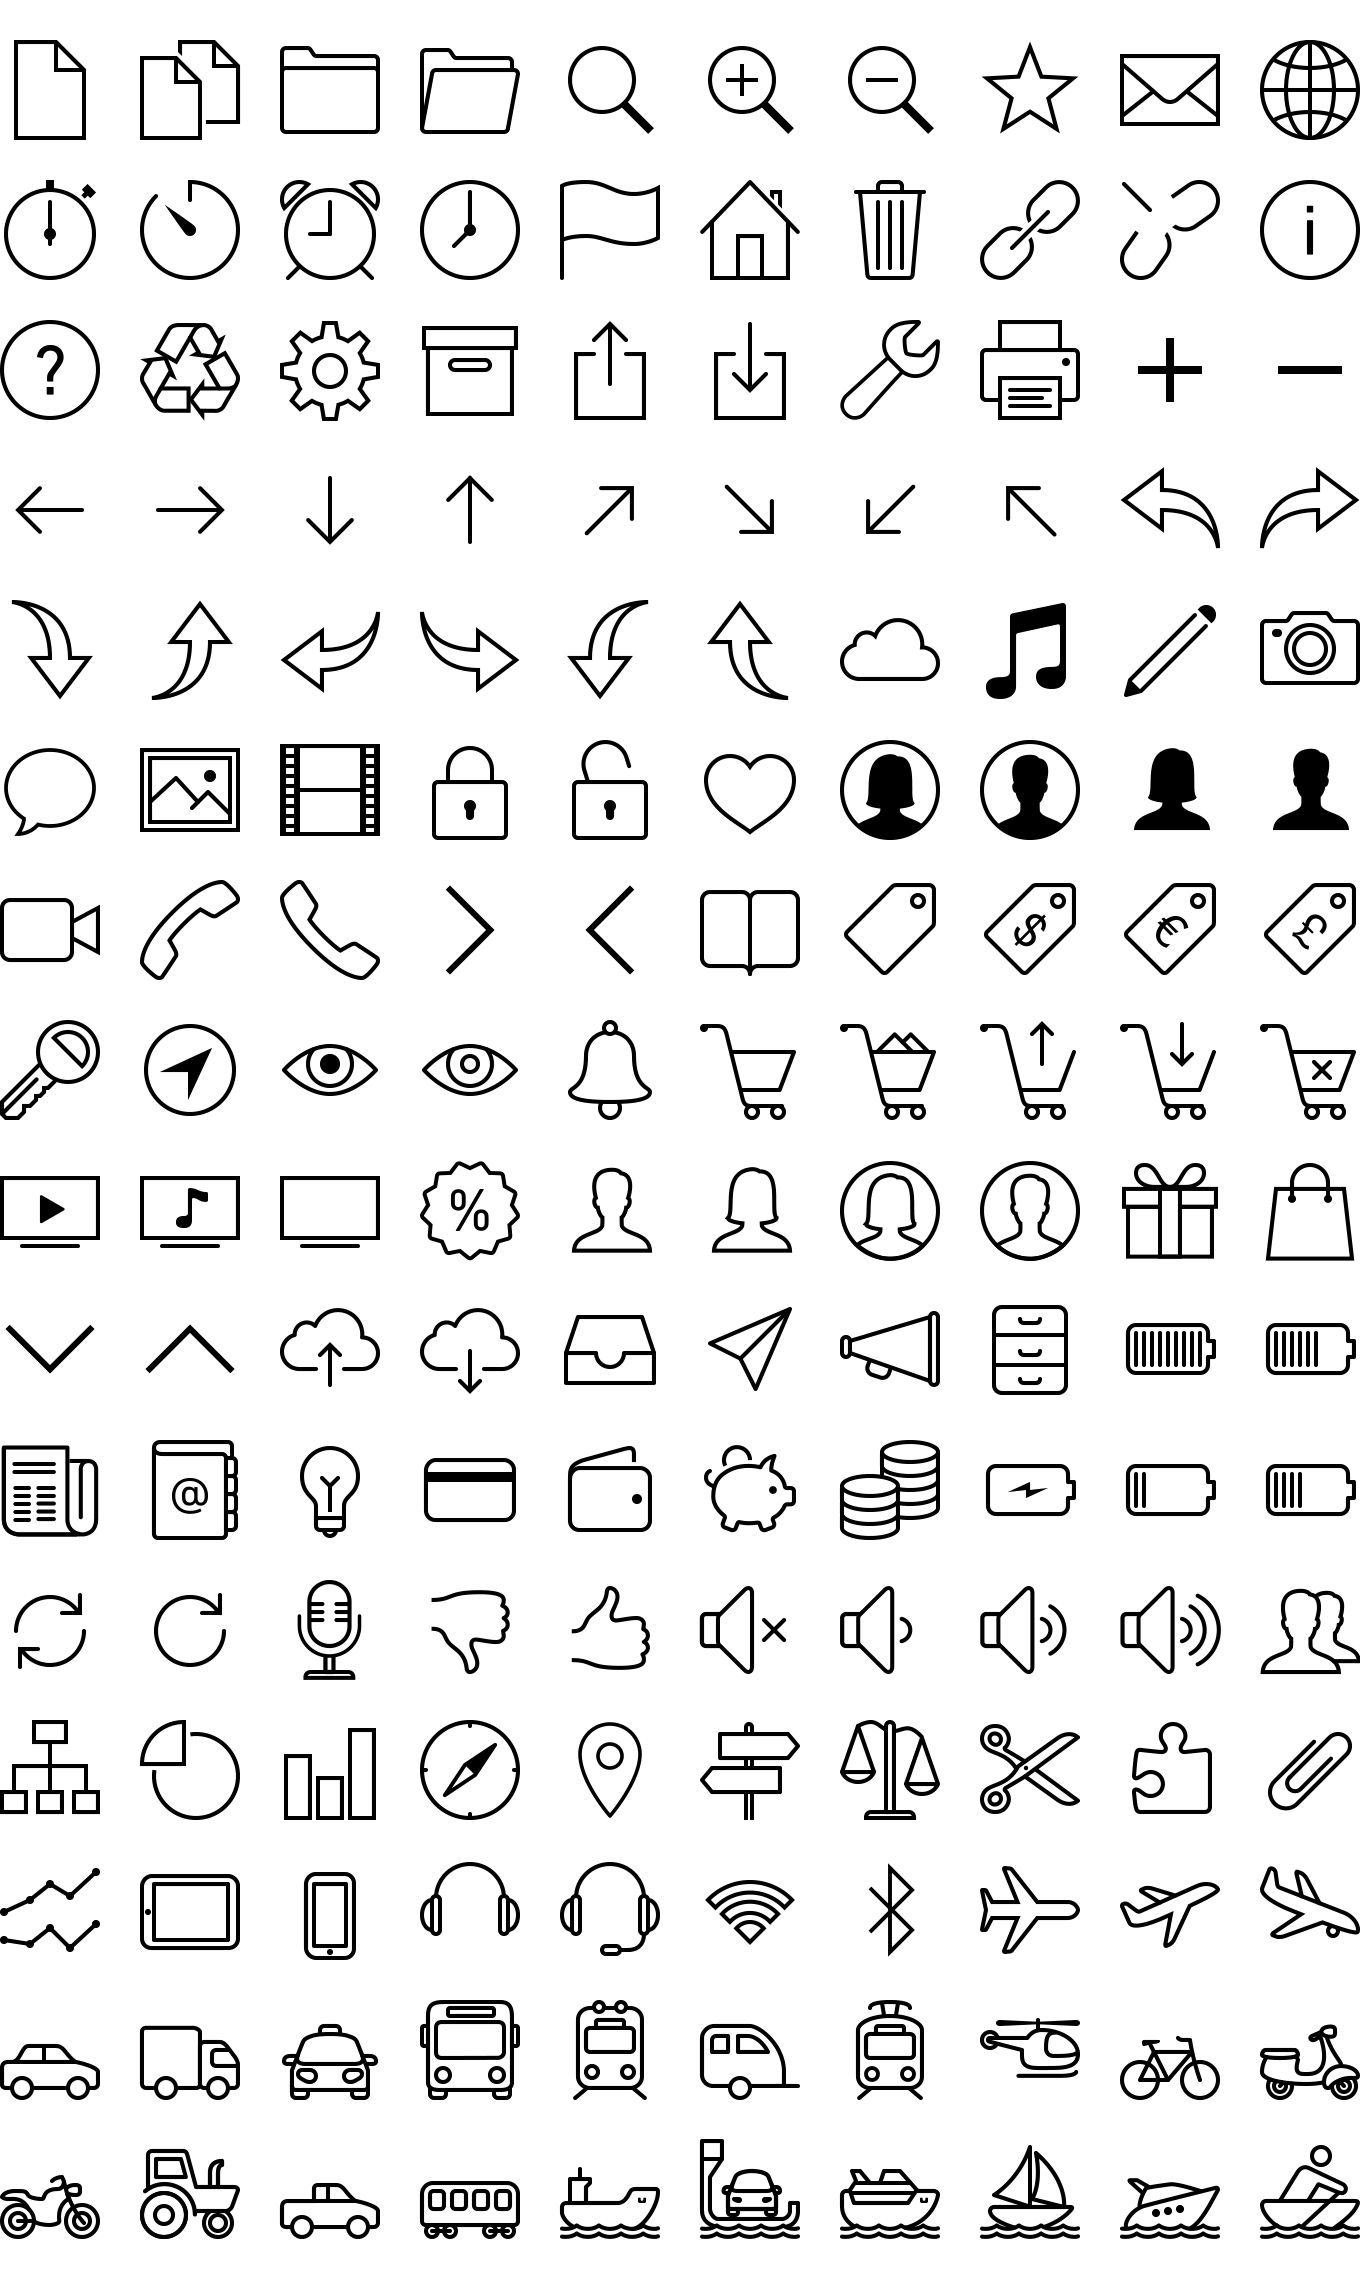 Download 1900+ Free iOS 7 Icons Icons8 Bullet journal